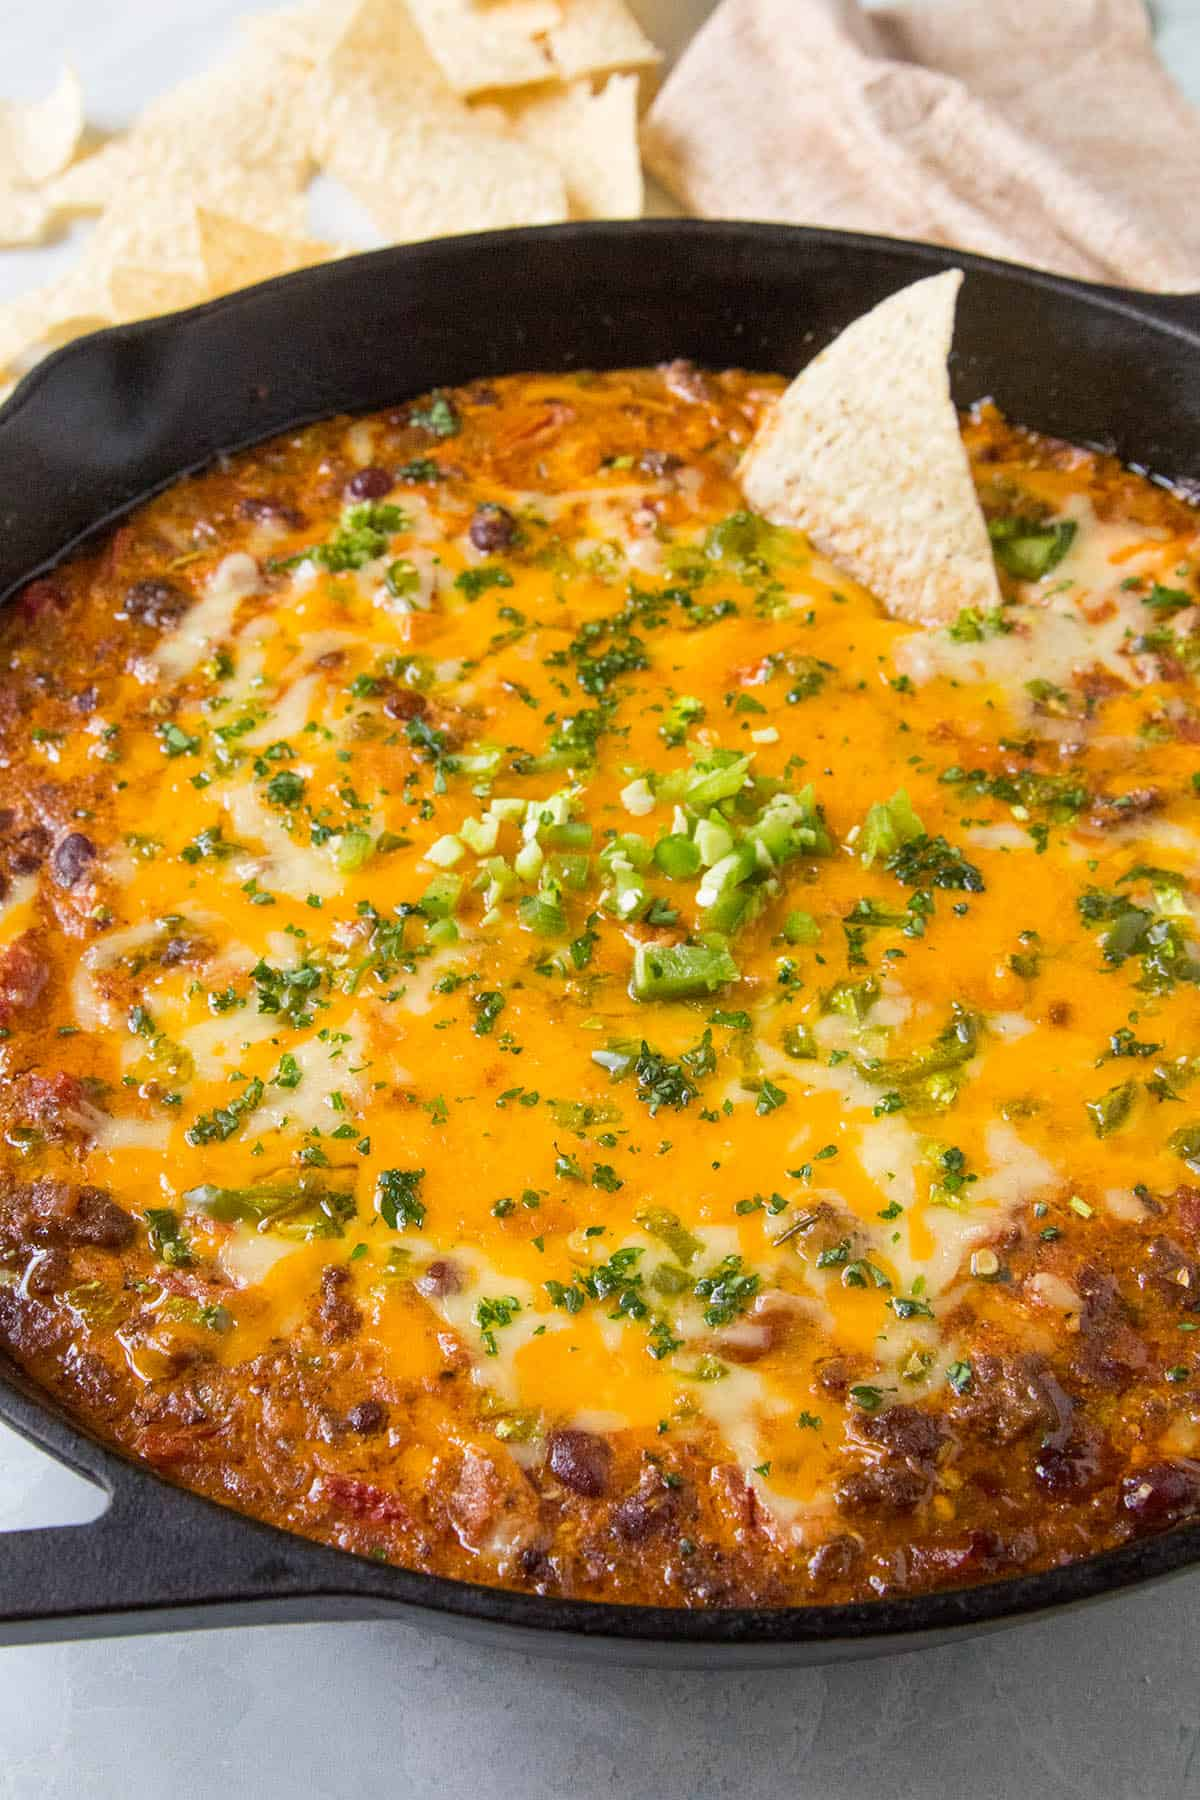 Chili Cheese Dip in a pan, ready to serve